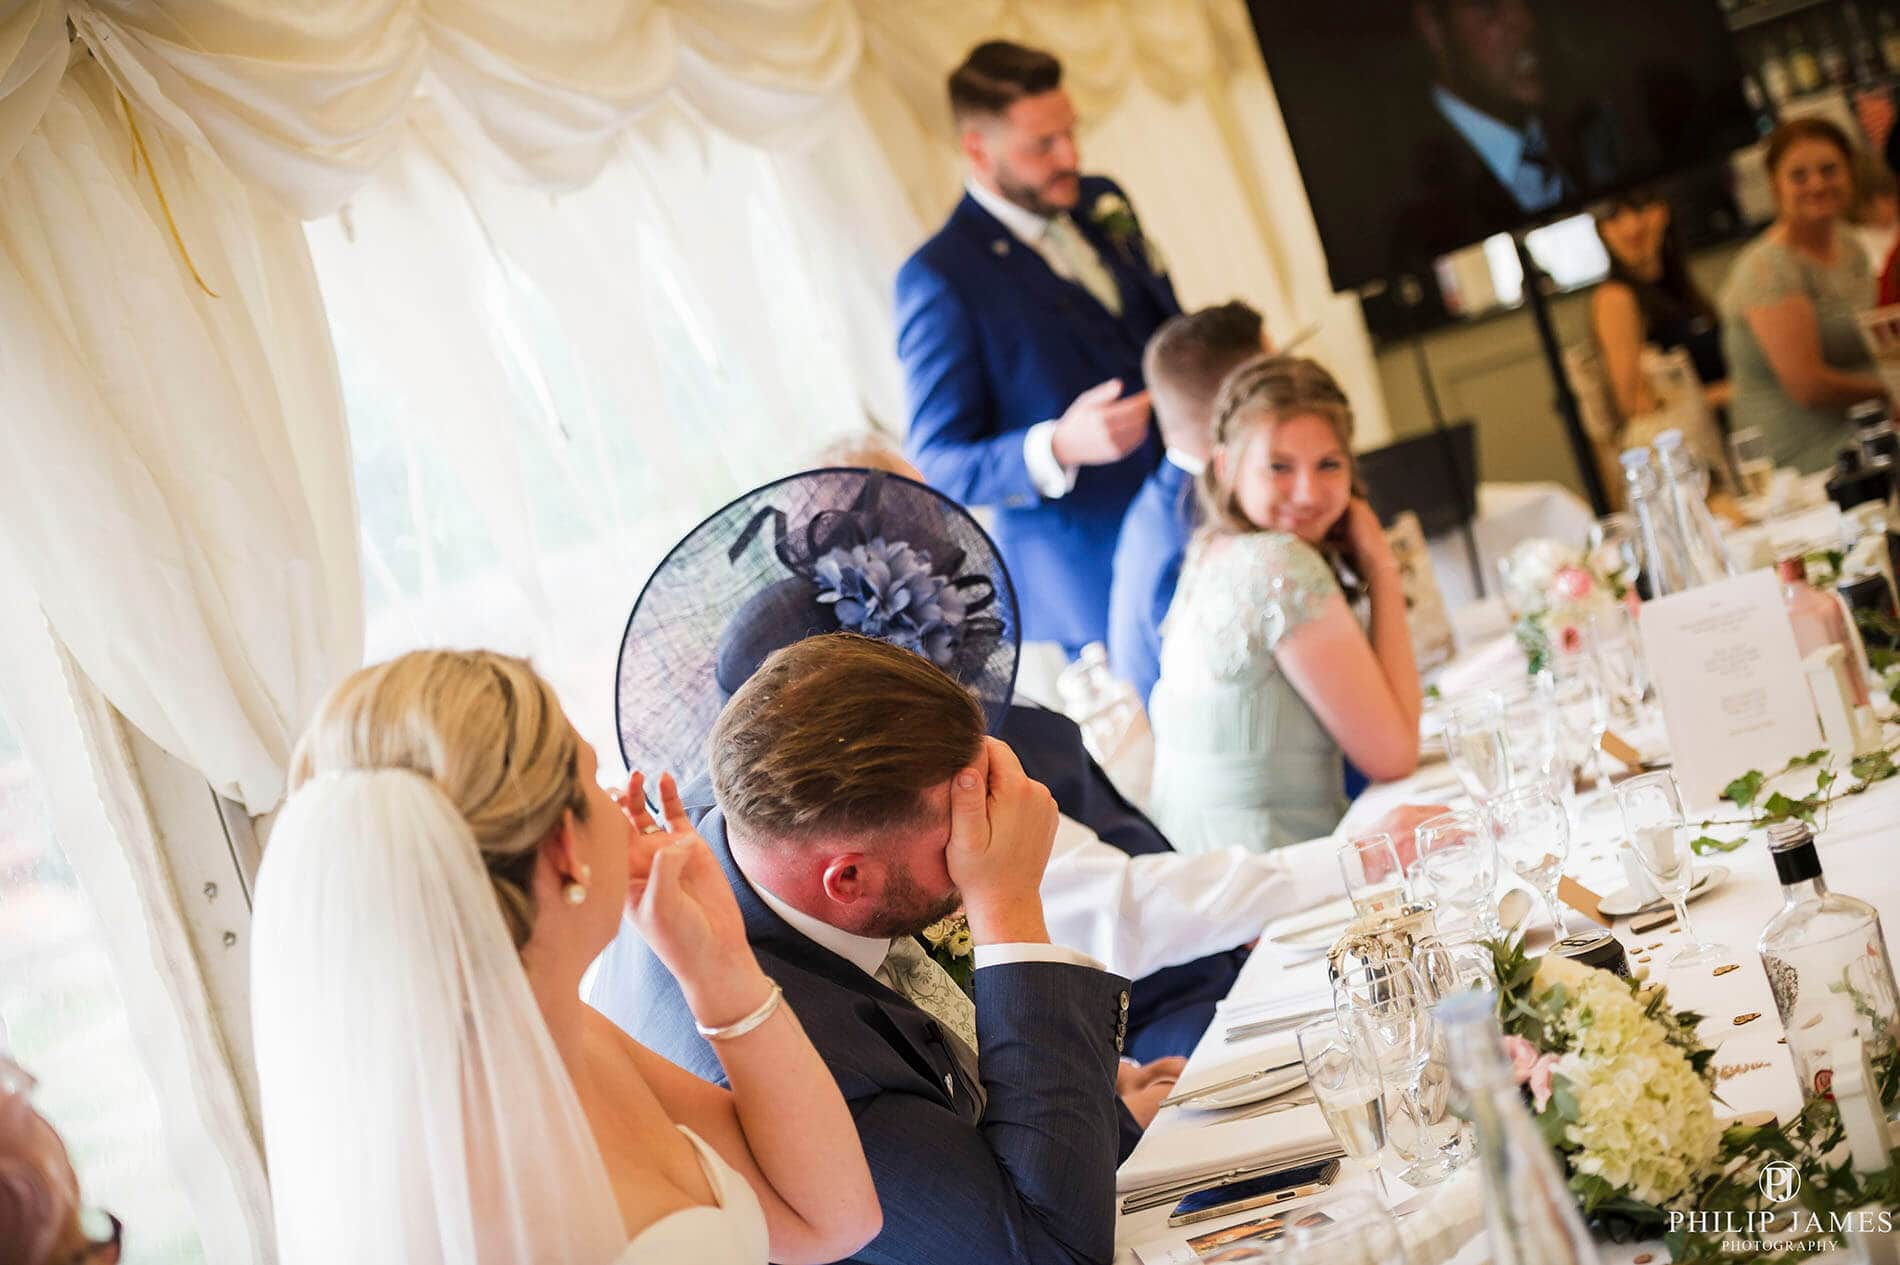 Grafton Manor Wedding Photographer - Philip James covers Birmingham, The West Midlands, Solihull and Destination weddings. Wedding photography Birmingham is my passion